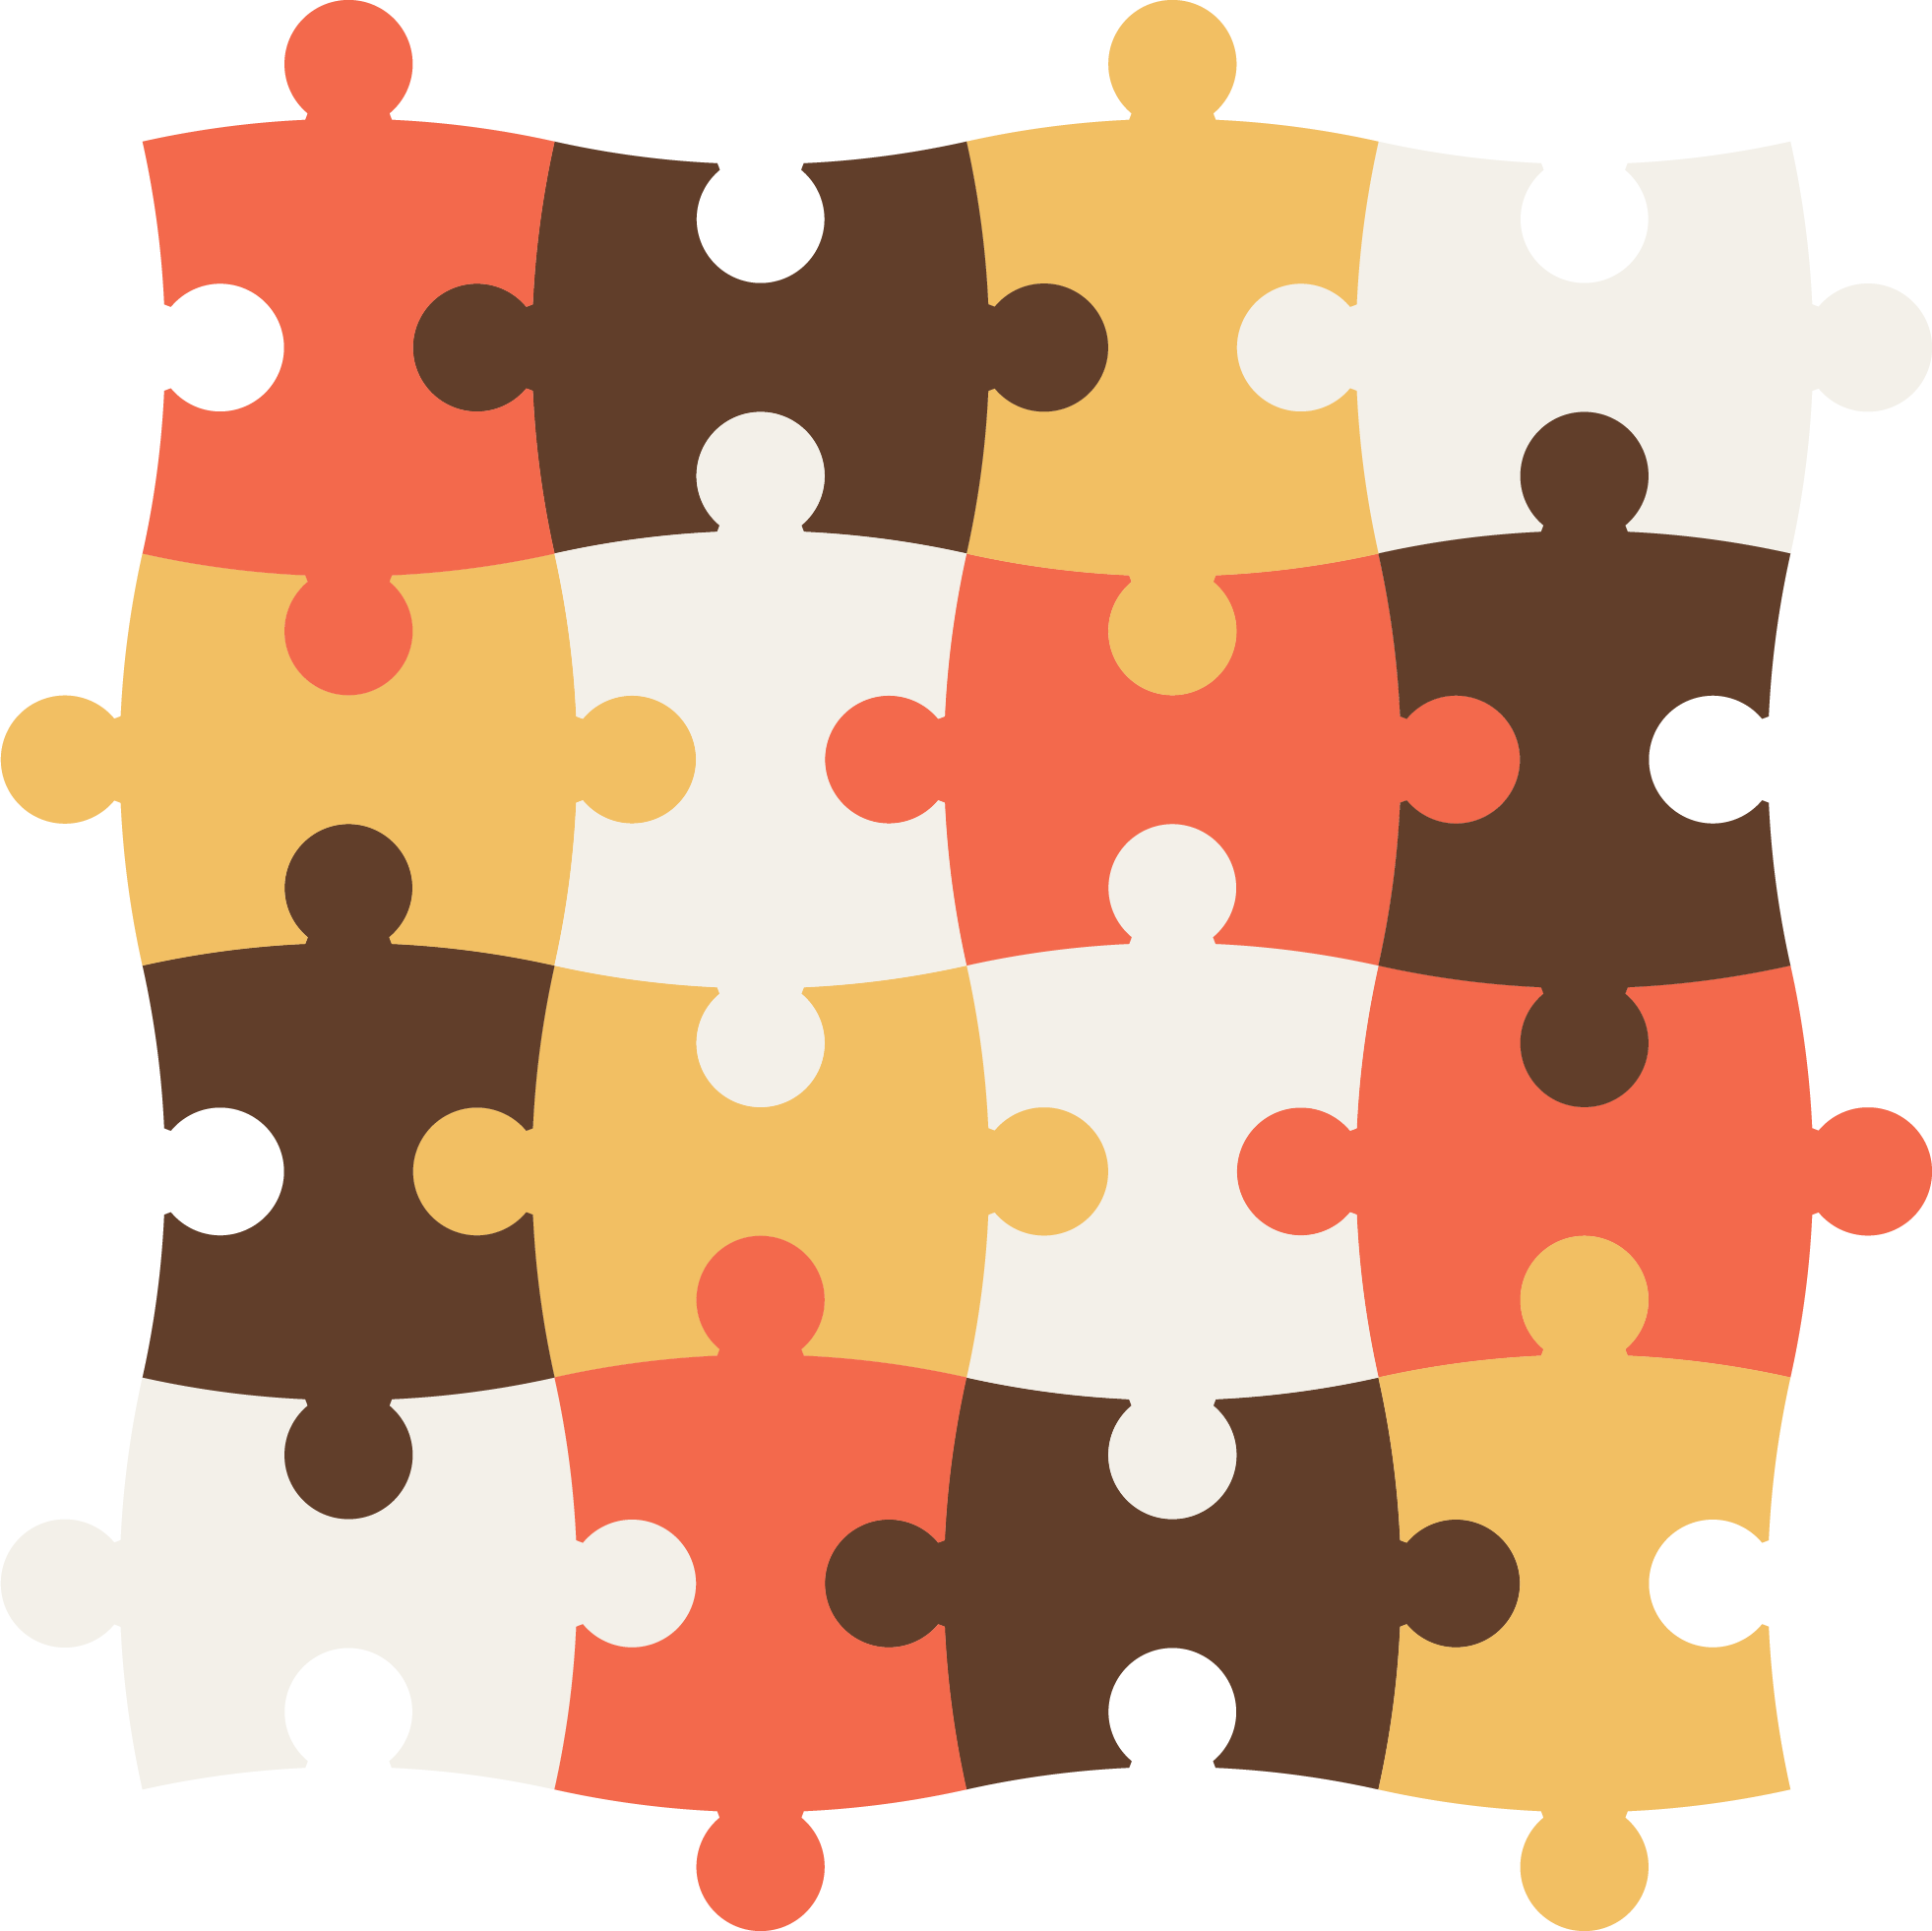 Puzzle PNG HD - 142794